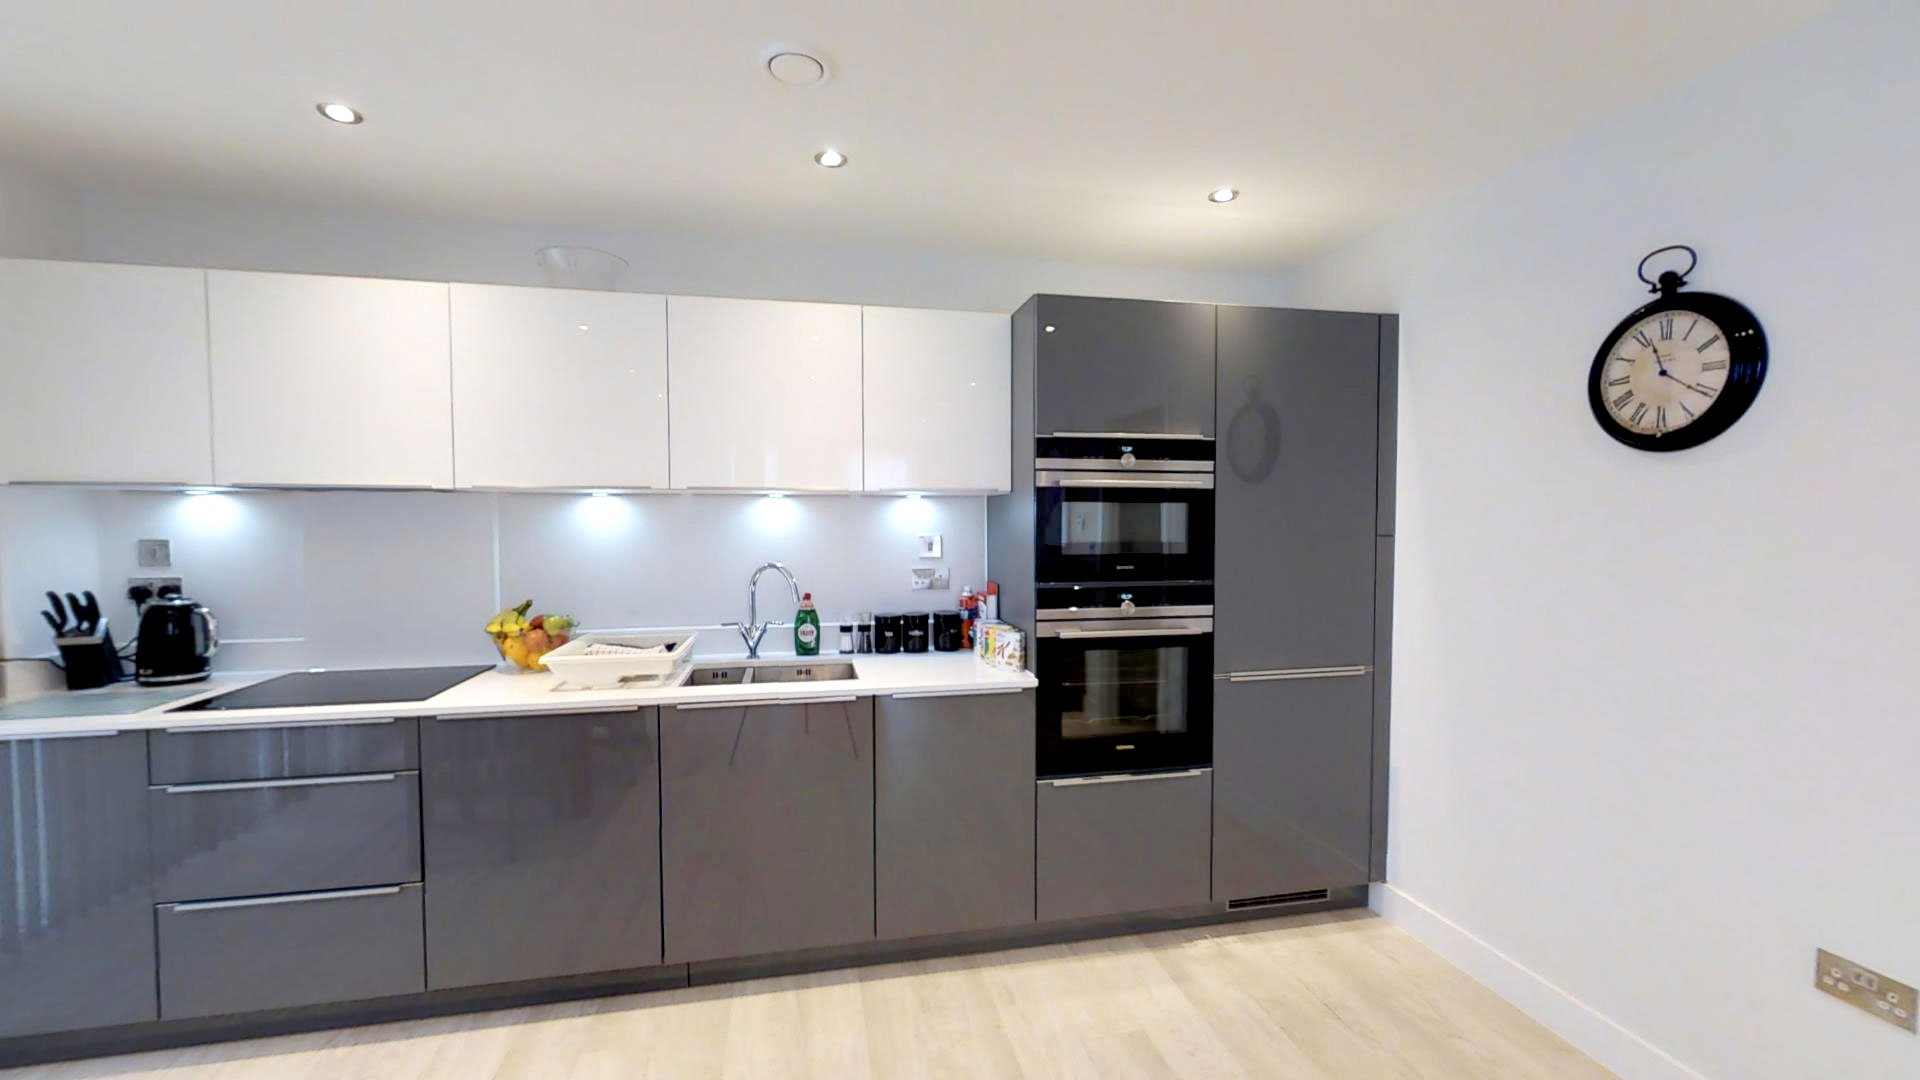 Accommodation close to prime Cambridge locations, including the City Centre, Cambridge Station, the universities, Cambridge Business Park and Cambridge Science Park.